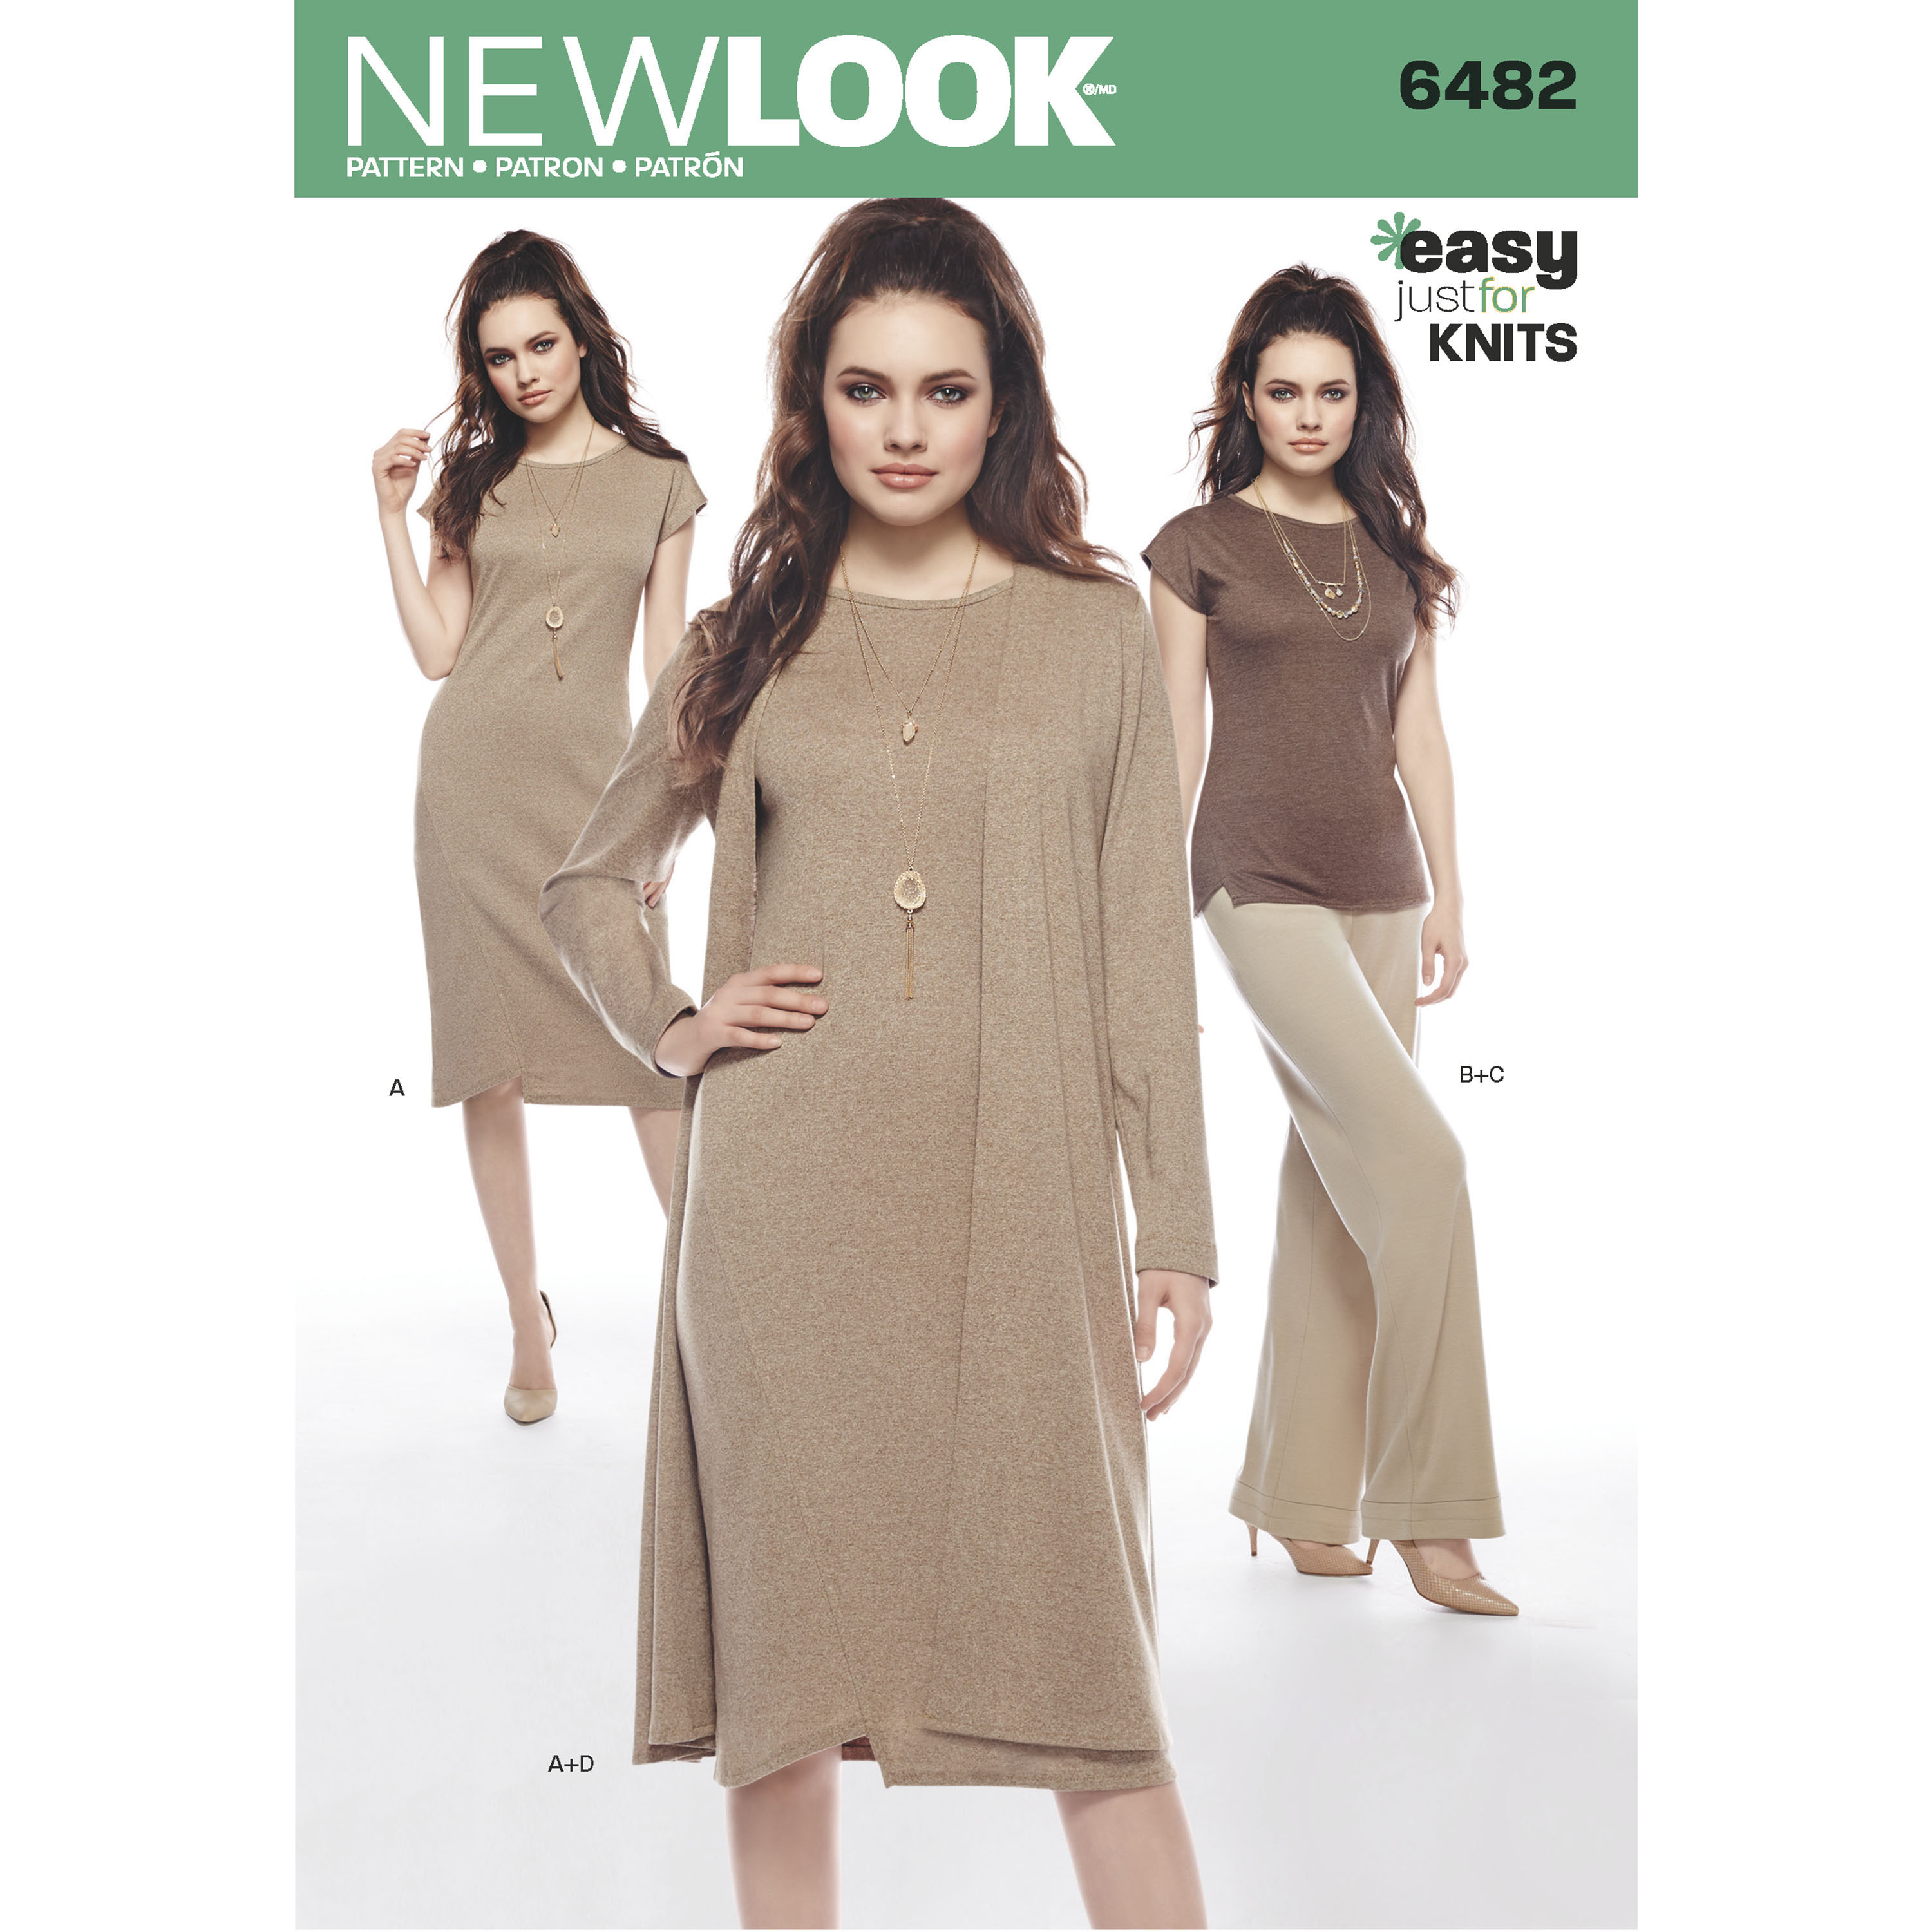 New Look 6482 Misses\' Knit Dress, Tunic, Pants and Duster